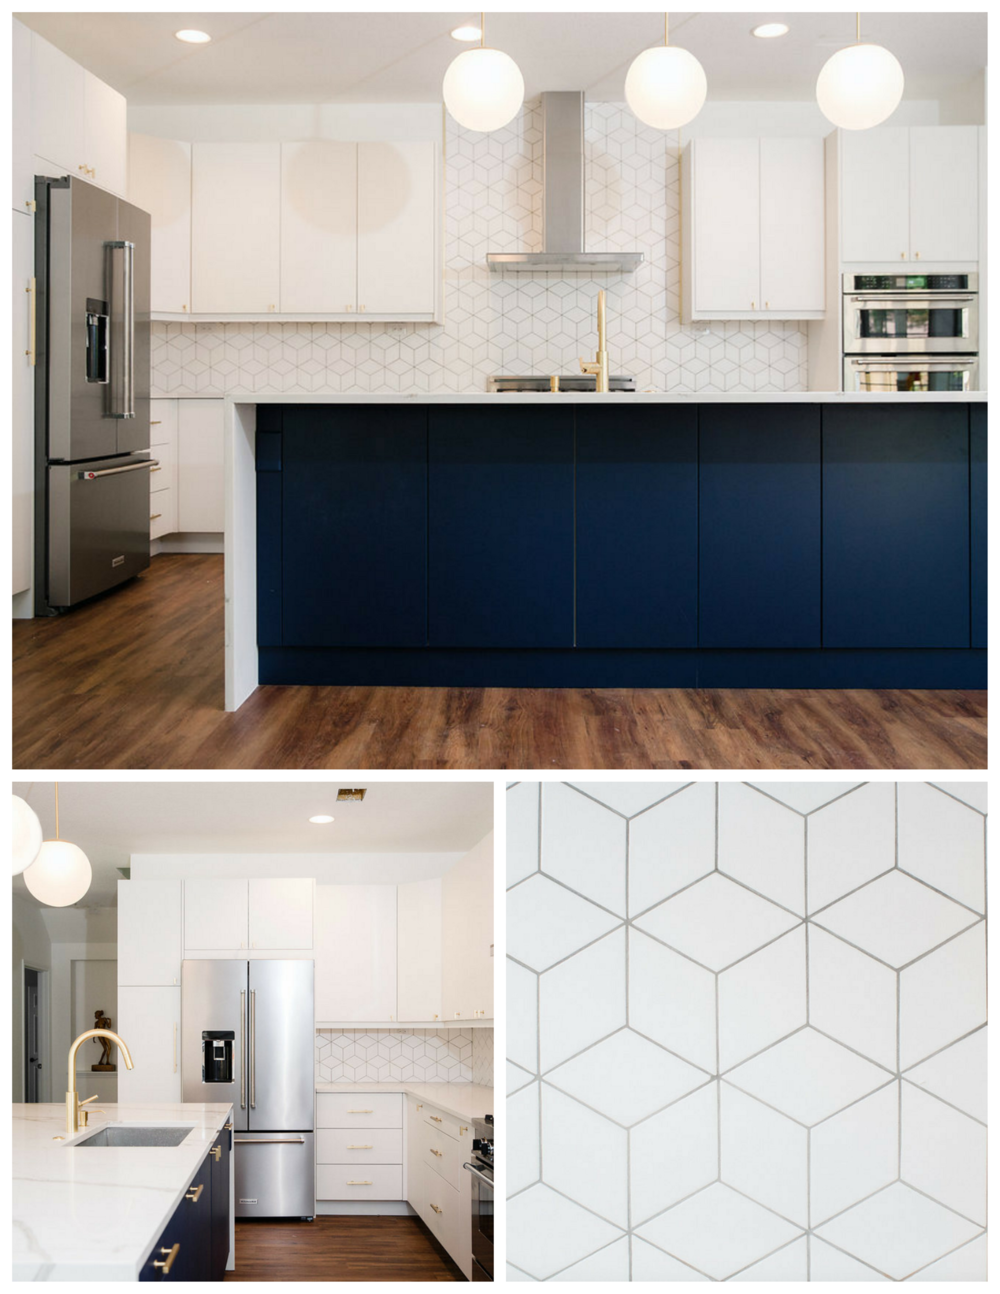 In addition to the waterfall countertop and blue and white cabinetry, this kitchen features Newport Brass fixtures, stainless steel appliances, and diamond-shaped, fire clay tiles installed to create a cube patterned backsplash.